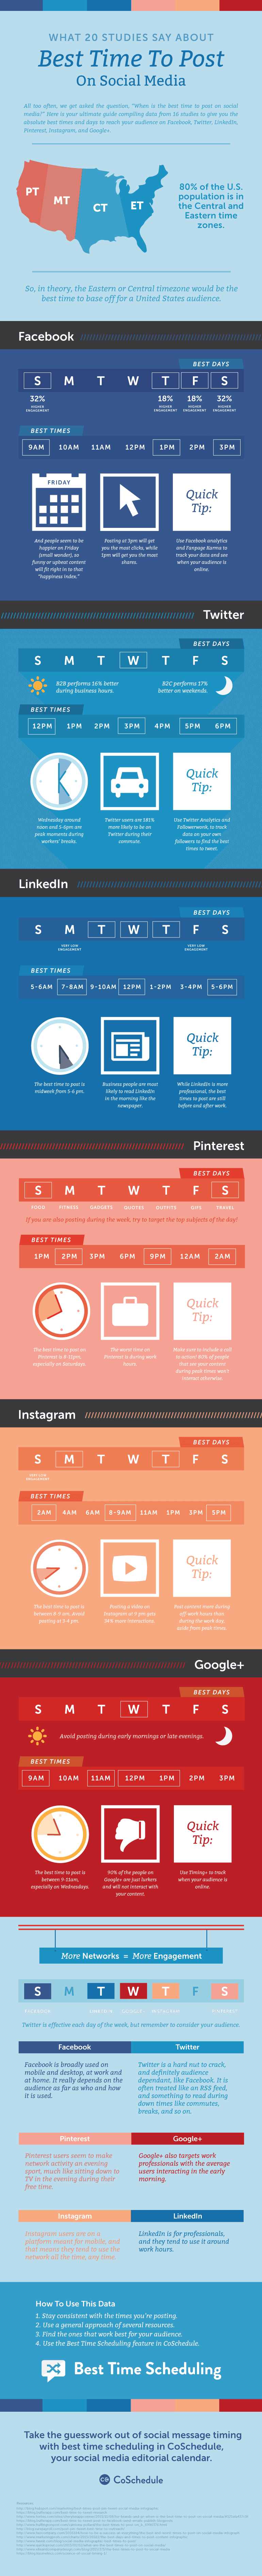 infographic on the best time to post on instagram, facebook, twitter, pinterest, and google+